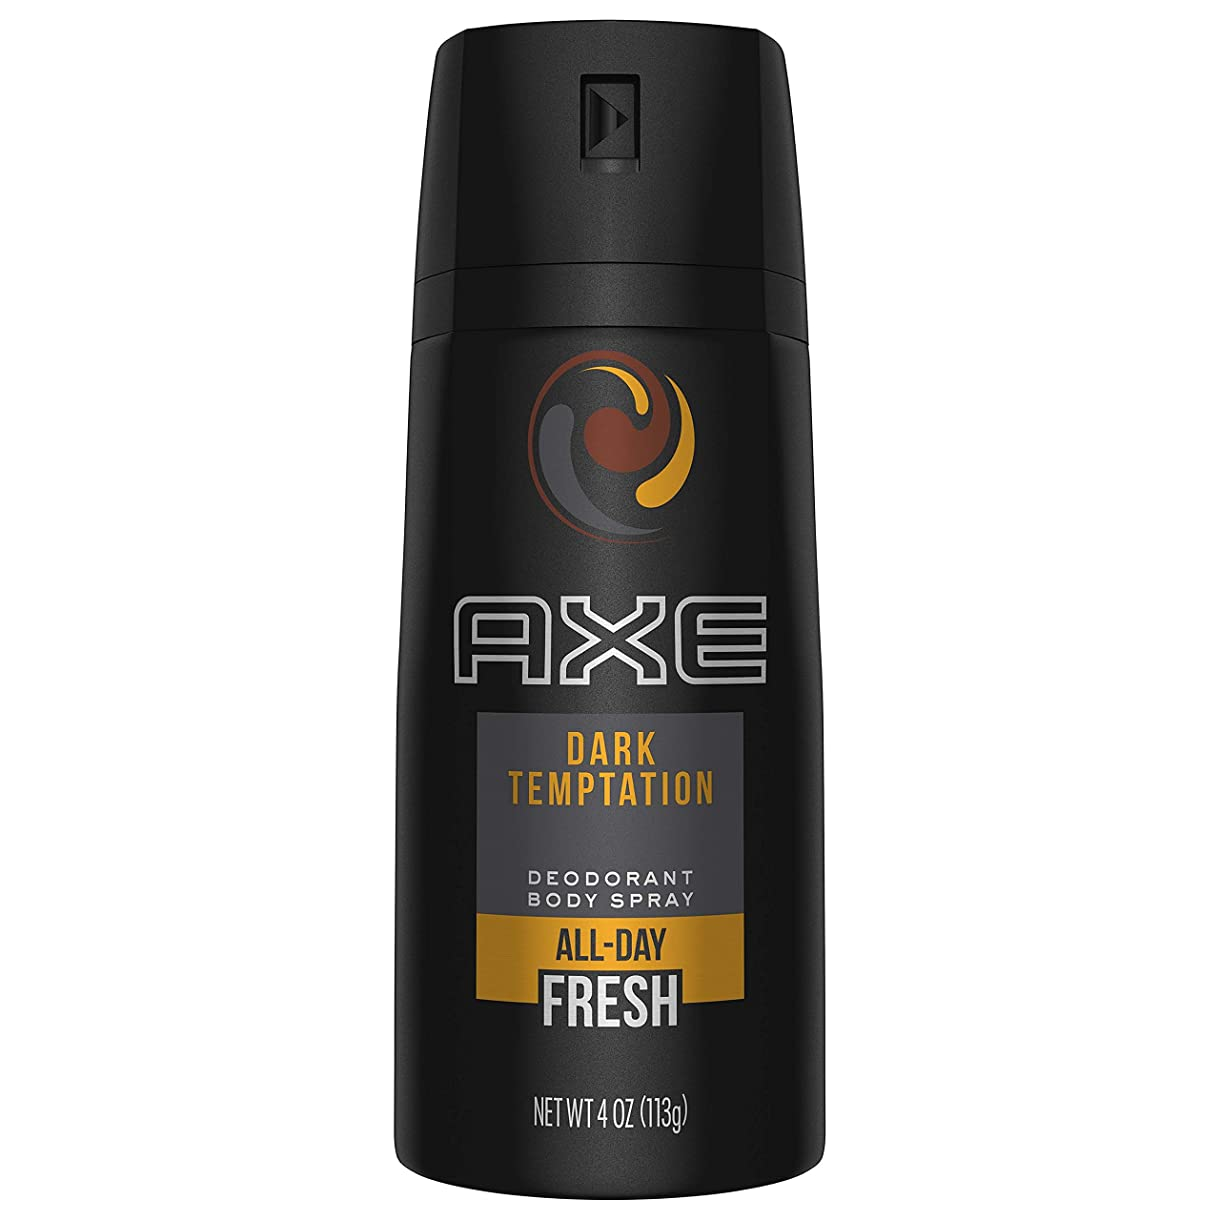 締めるベジタリアン苦しみAXE Dark Temptation Deodorant Body Spray 120 ml Deodorant Spray Men (並行輸入品)